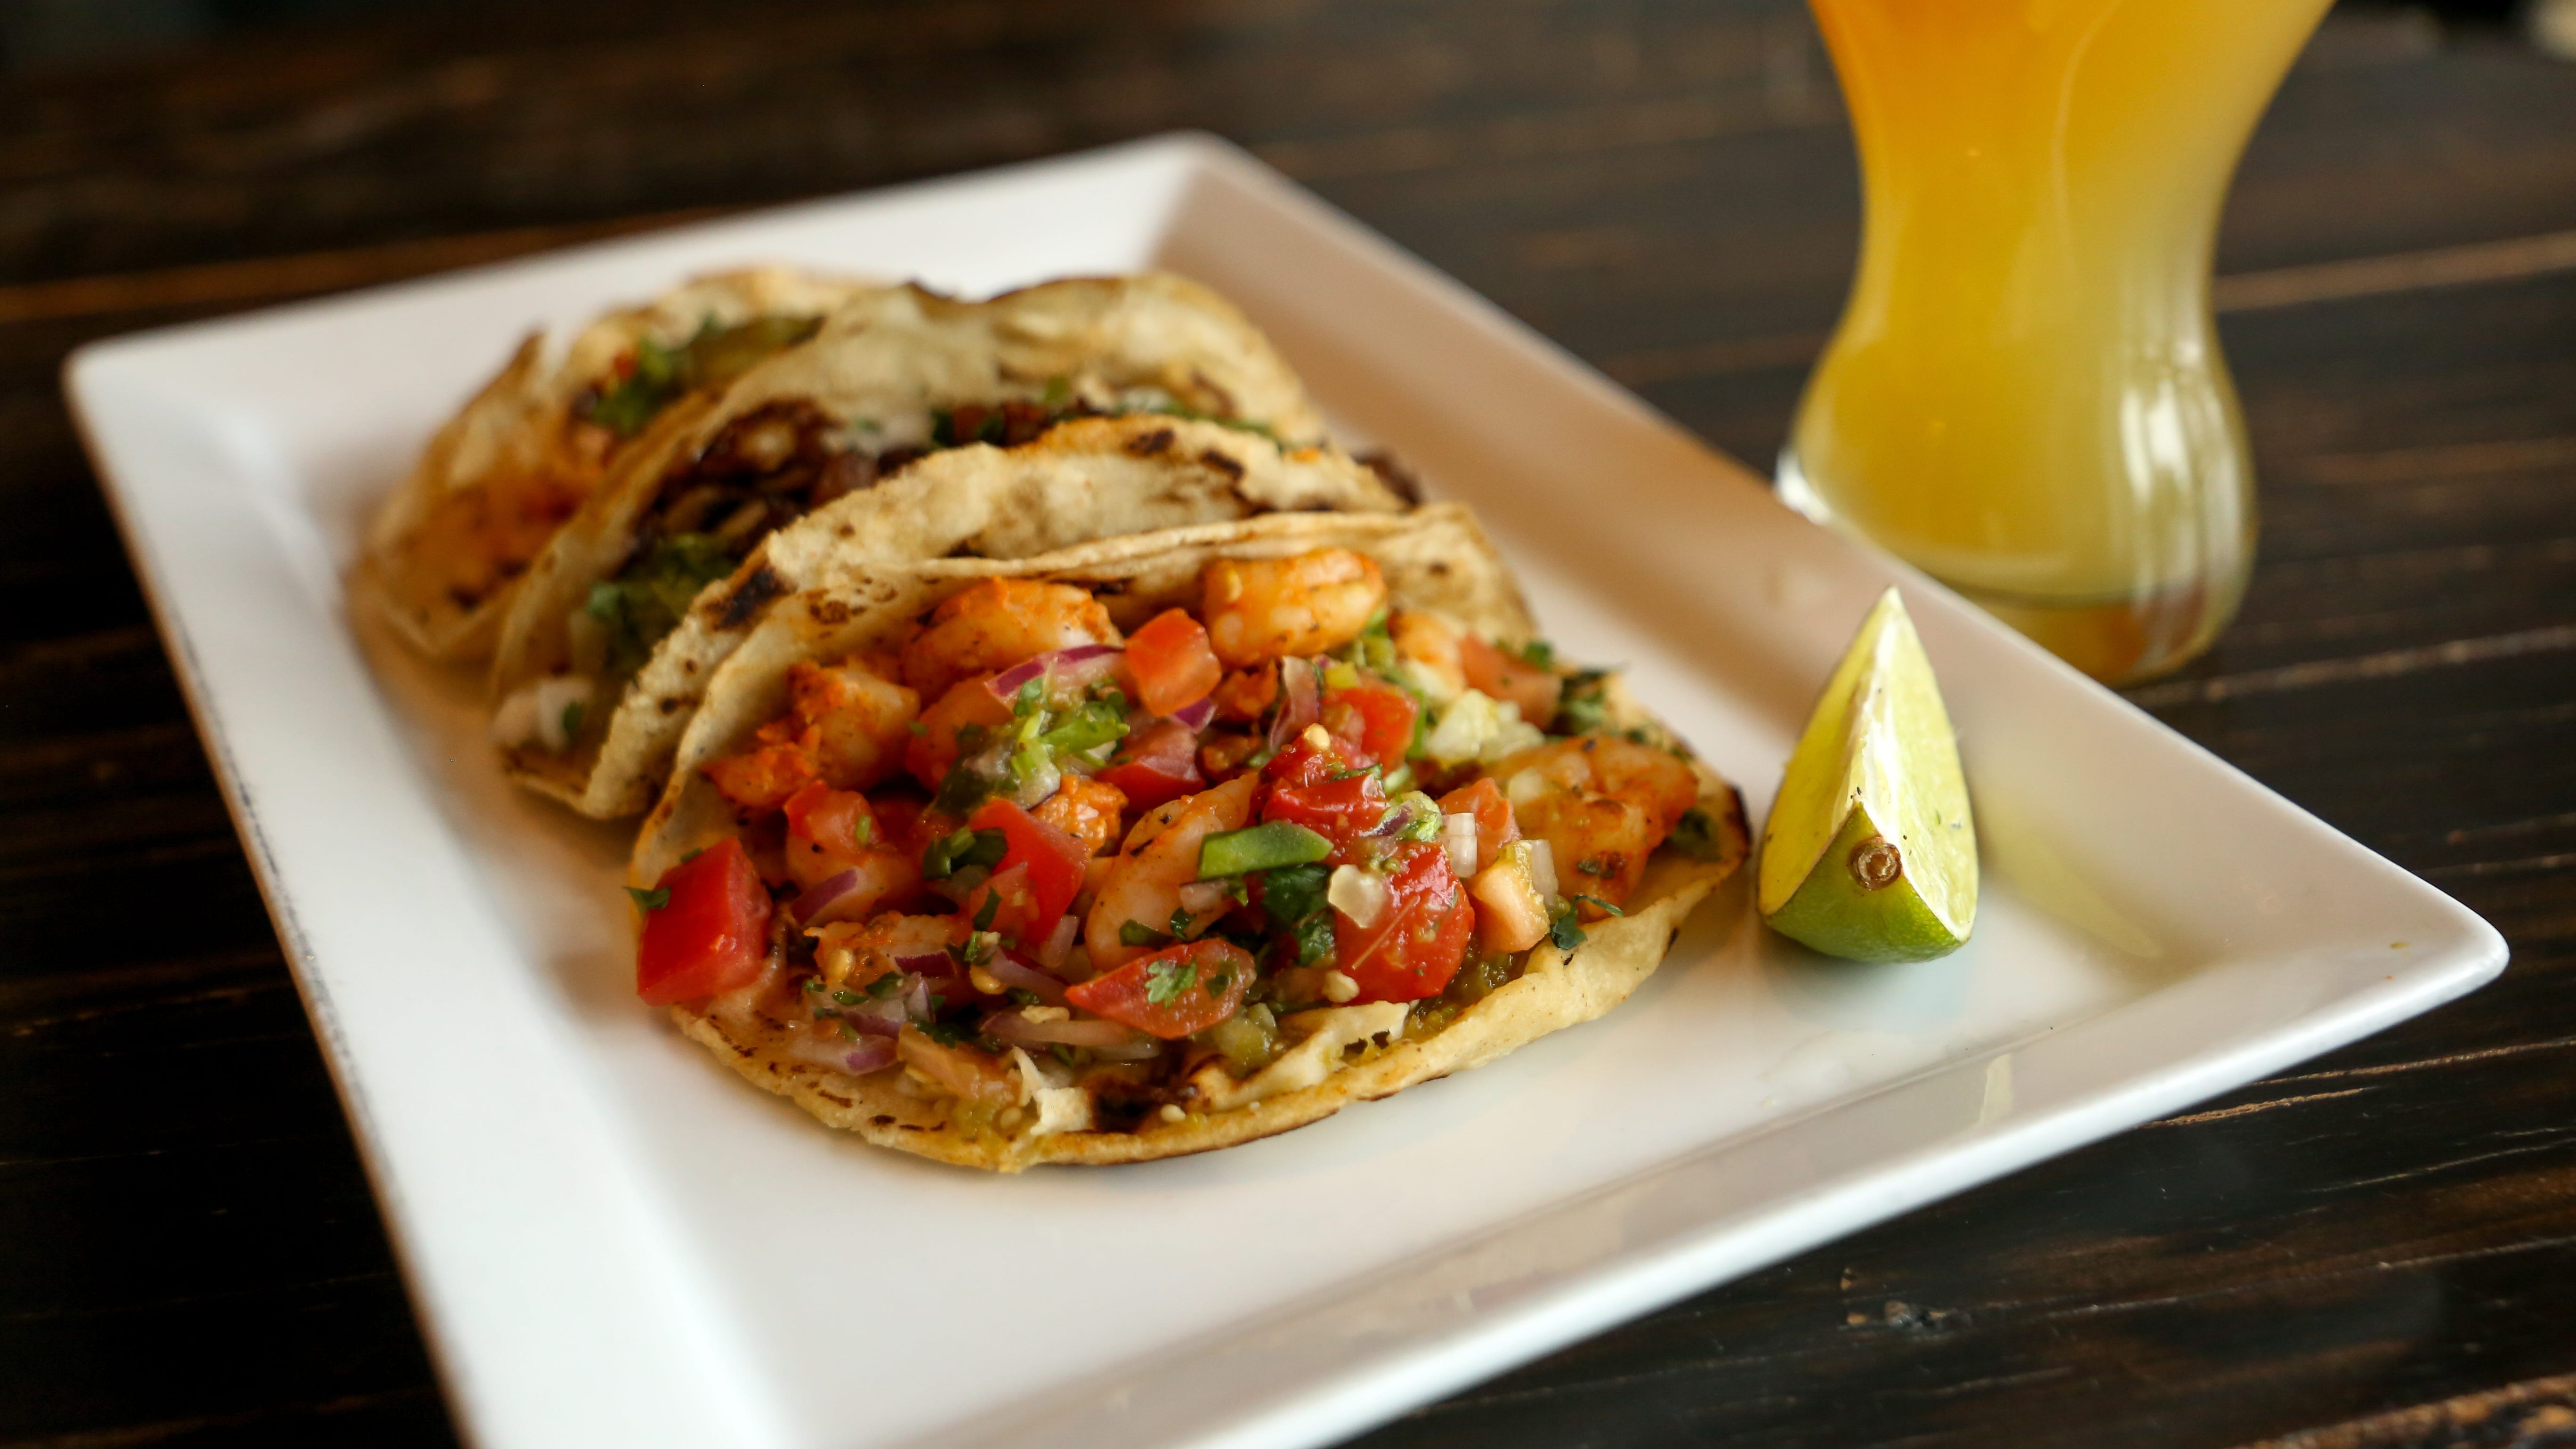 The assorted tacos are not on the menu – they are served only during early evening and late-night happy hours, and have been a smash hit with locals.